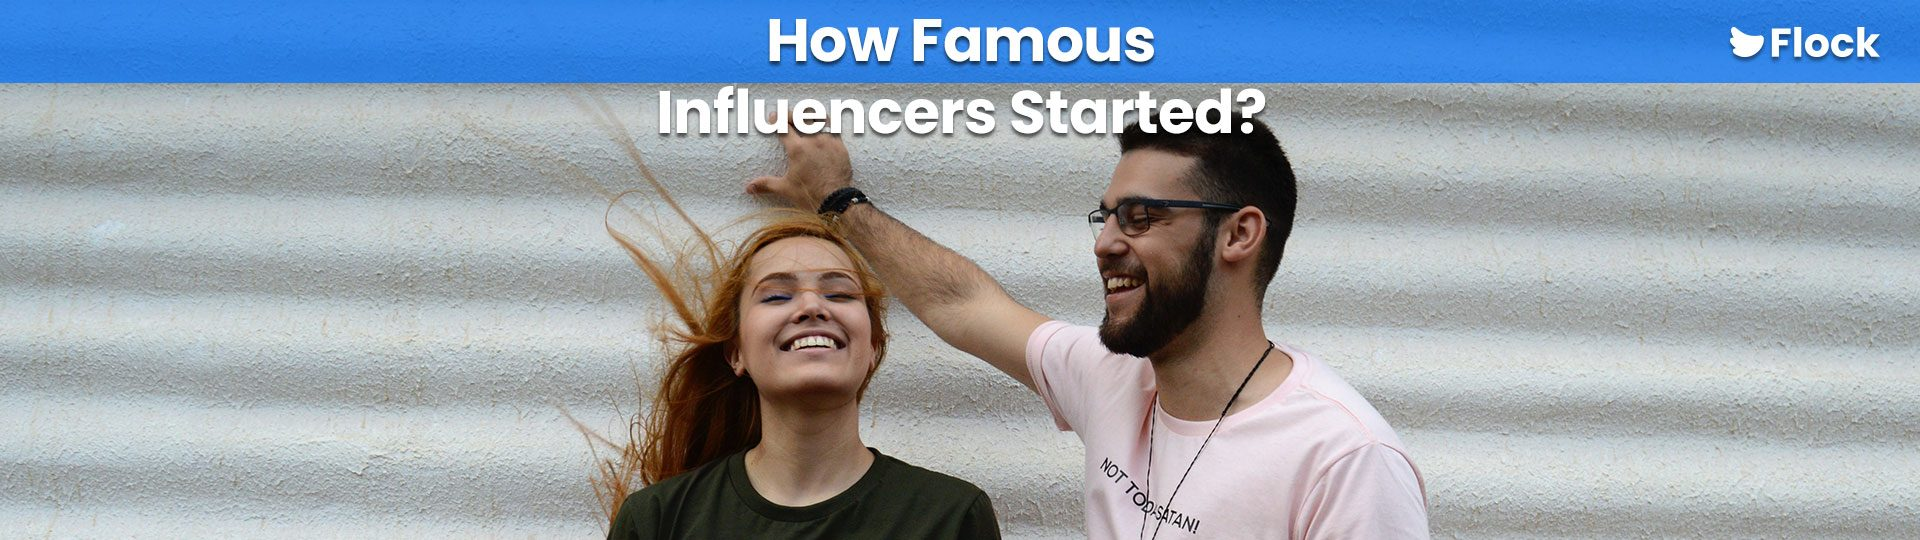 How Famous Influencers Started?